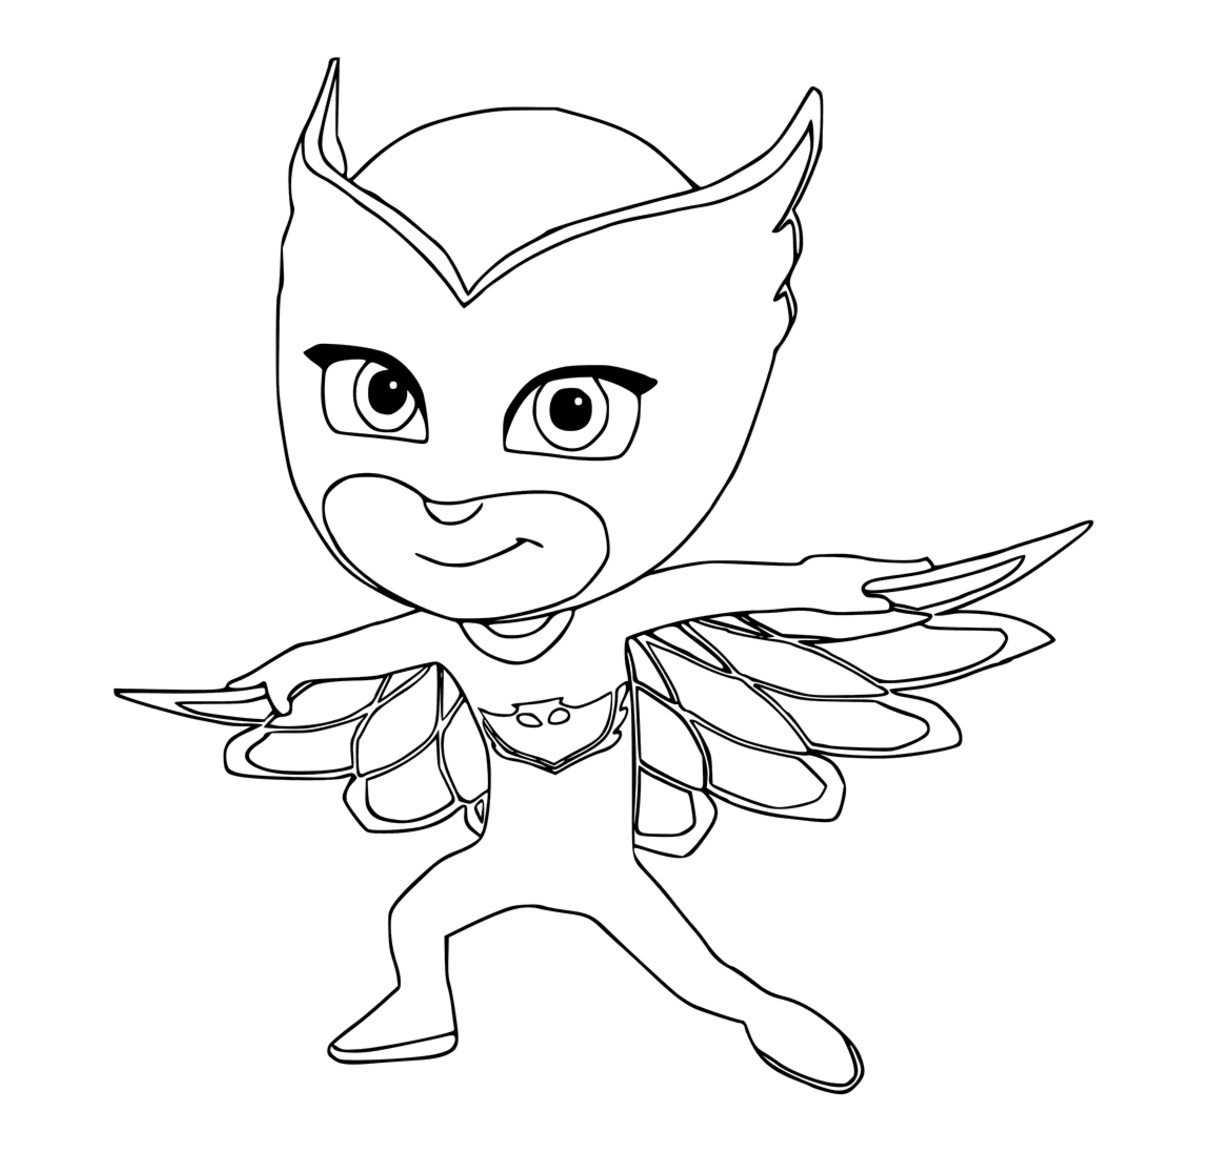 Owlette Colouring Page